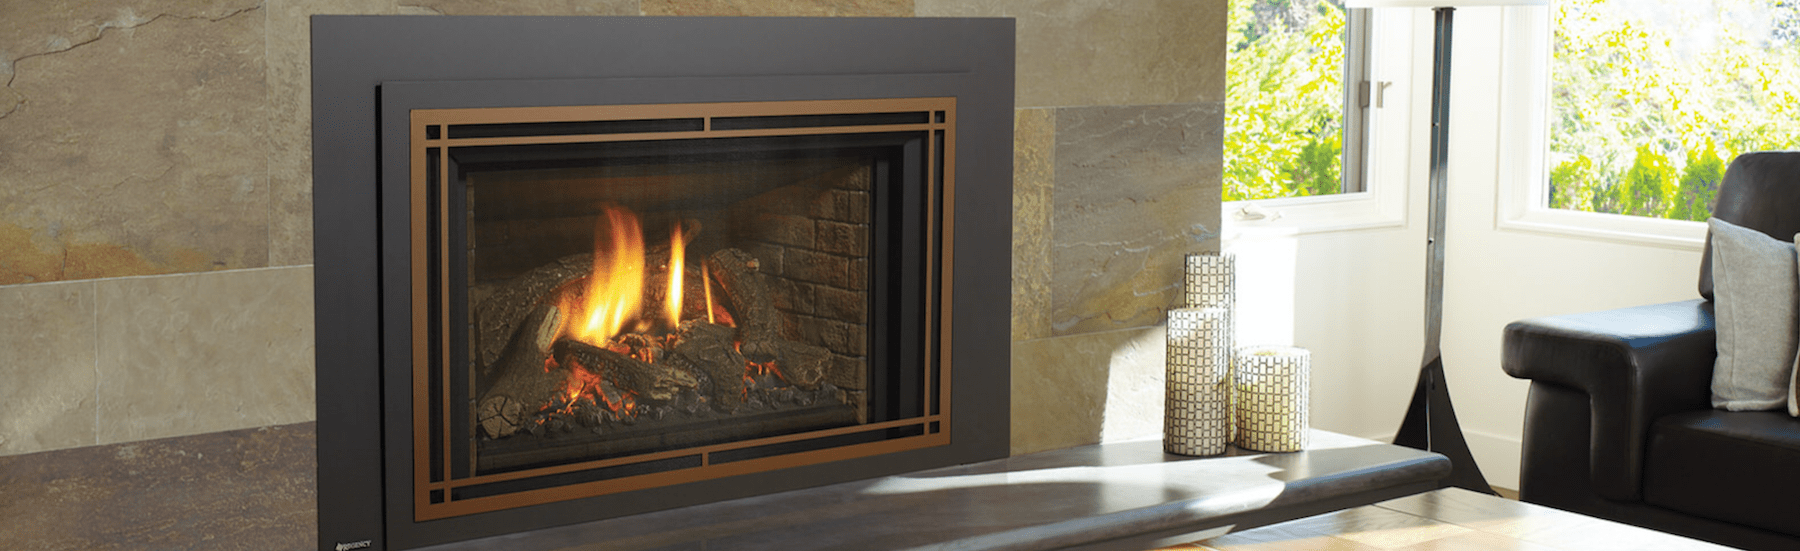 Gas Fireplace Store Fireplace Store Chicago Fireplace Installation Arlington Heights Il